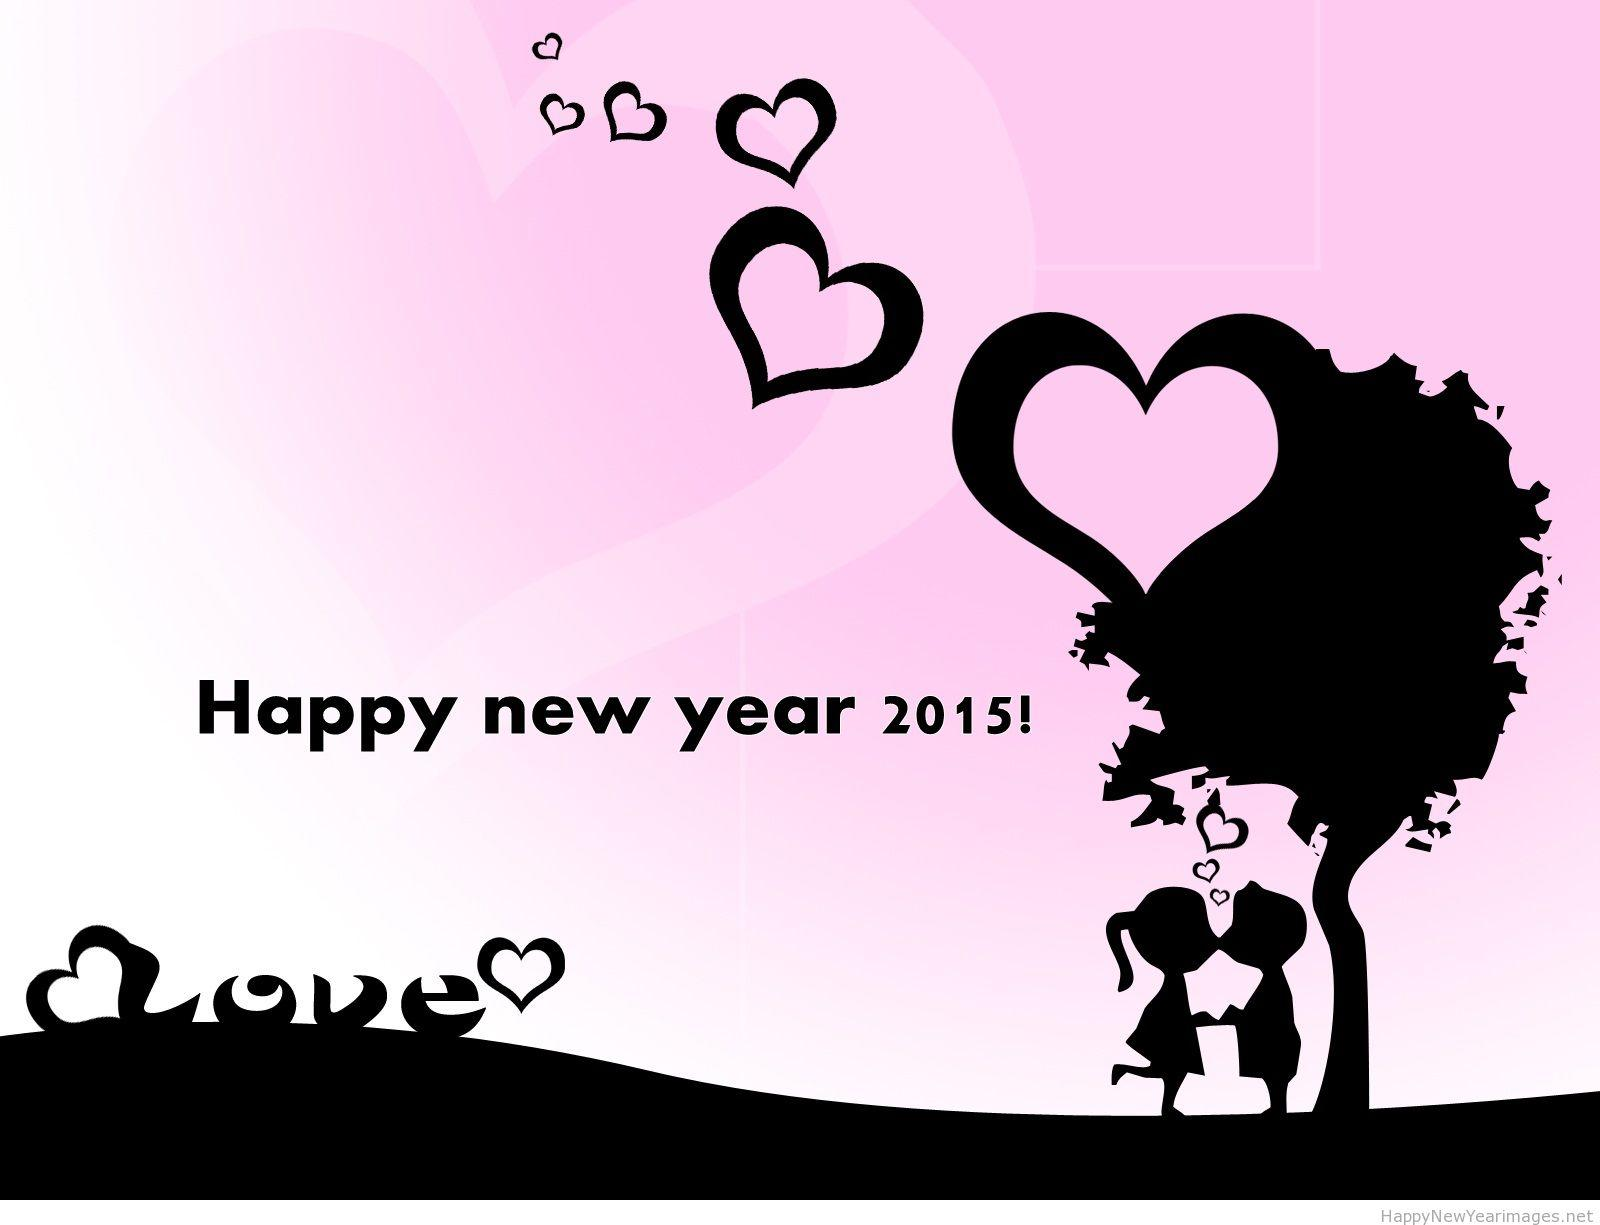 Happy new year 2015 Love wallpapers